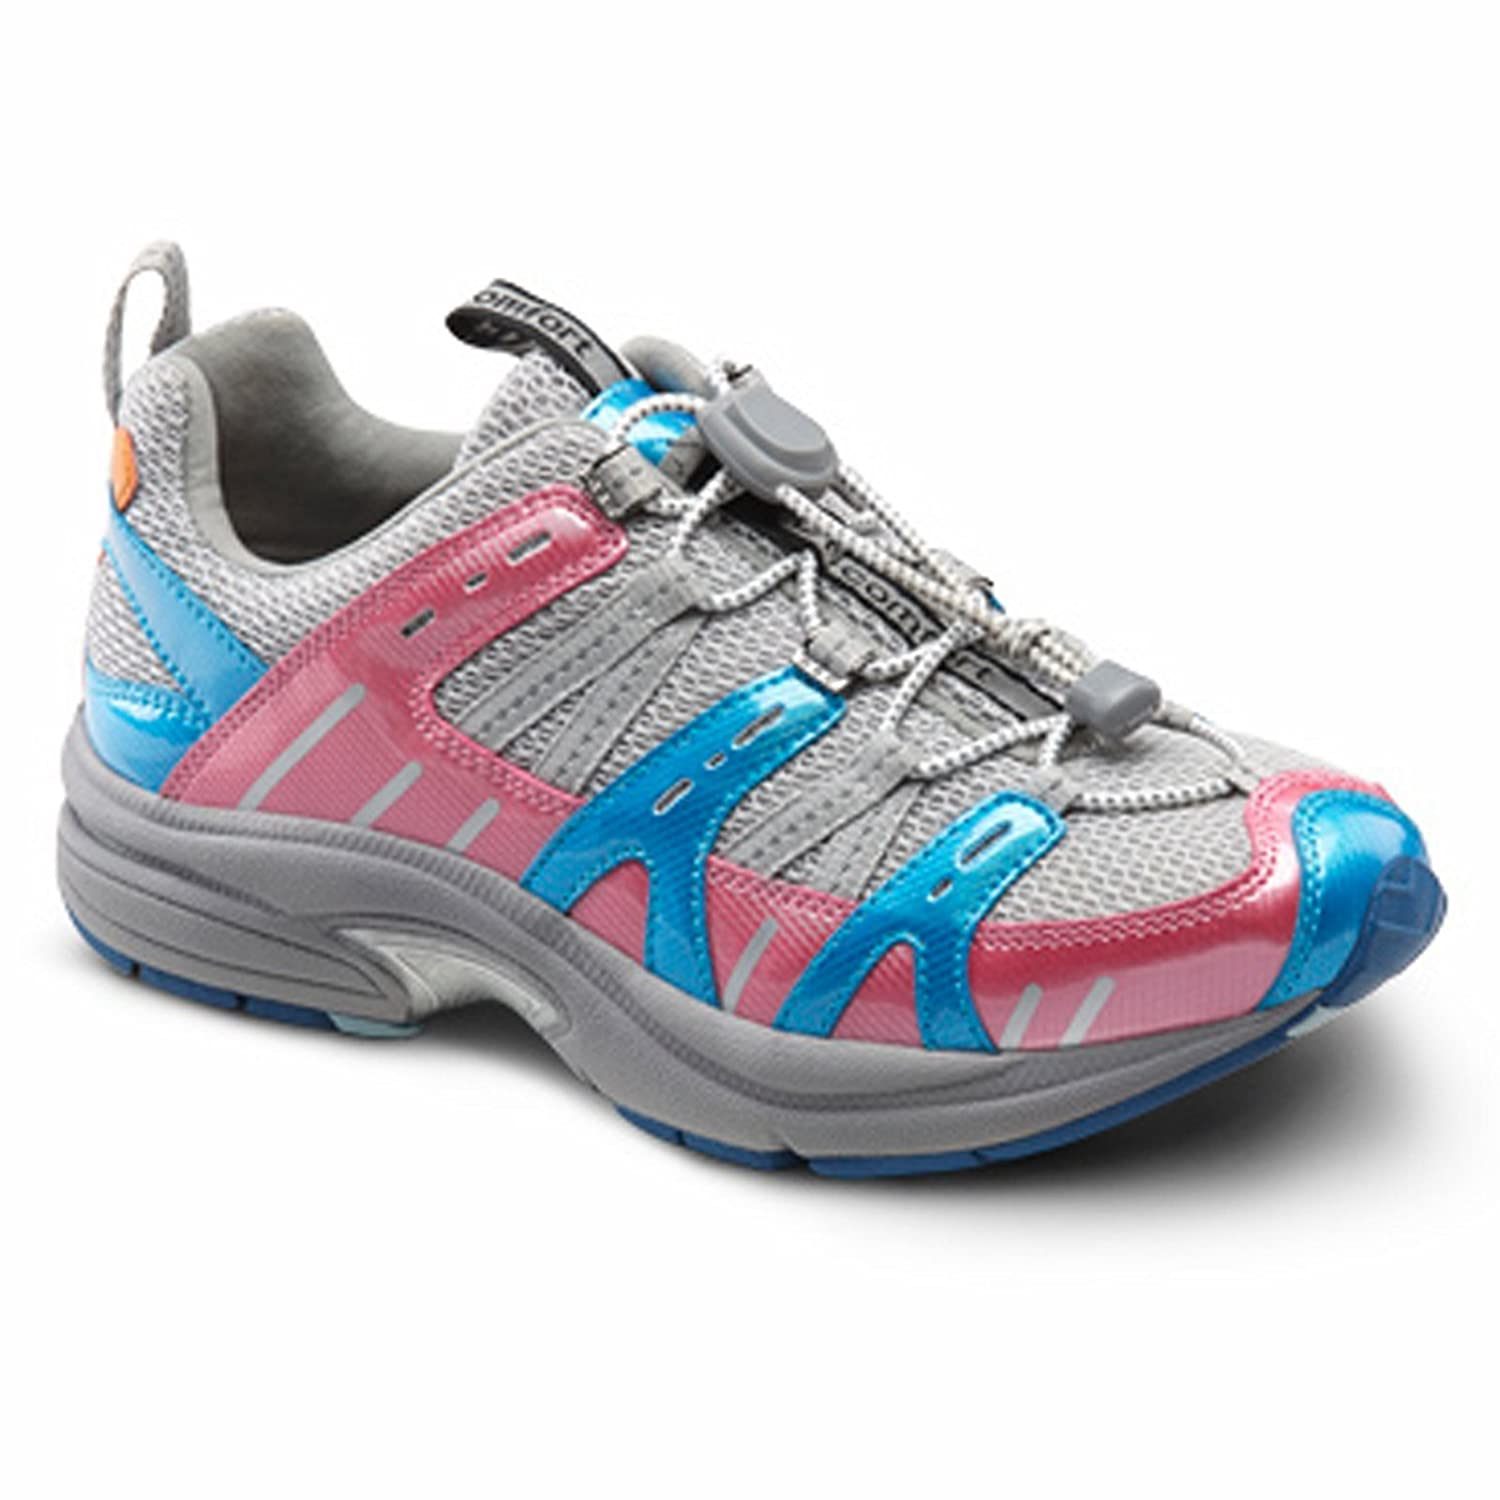 Dr. Comfort Women's Refresh Diabetic Athletic Shoes B00IO86CF2 8 E US|Berry